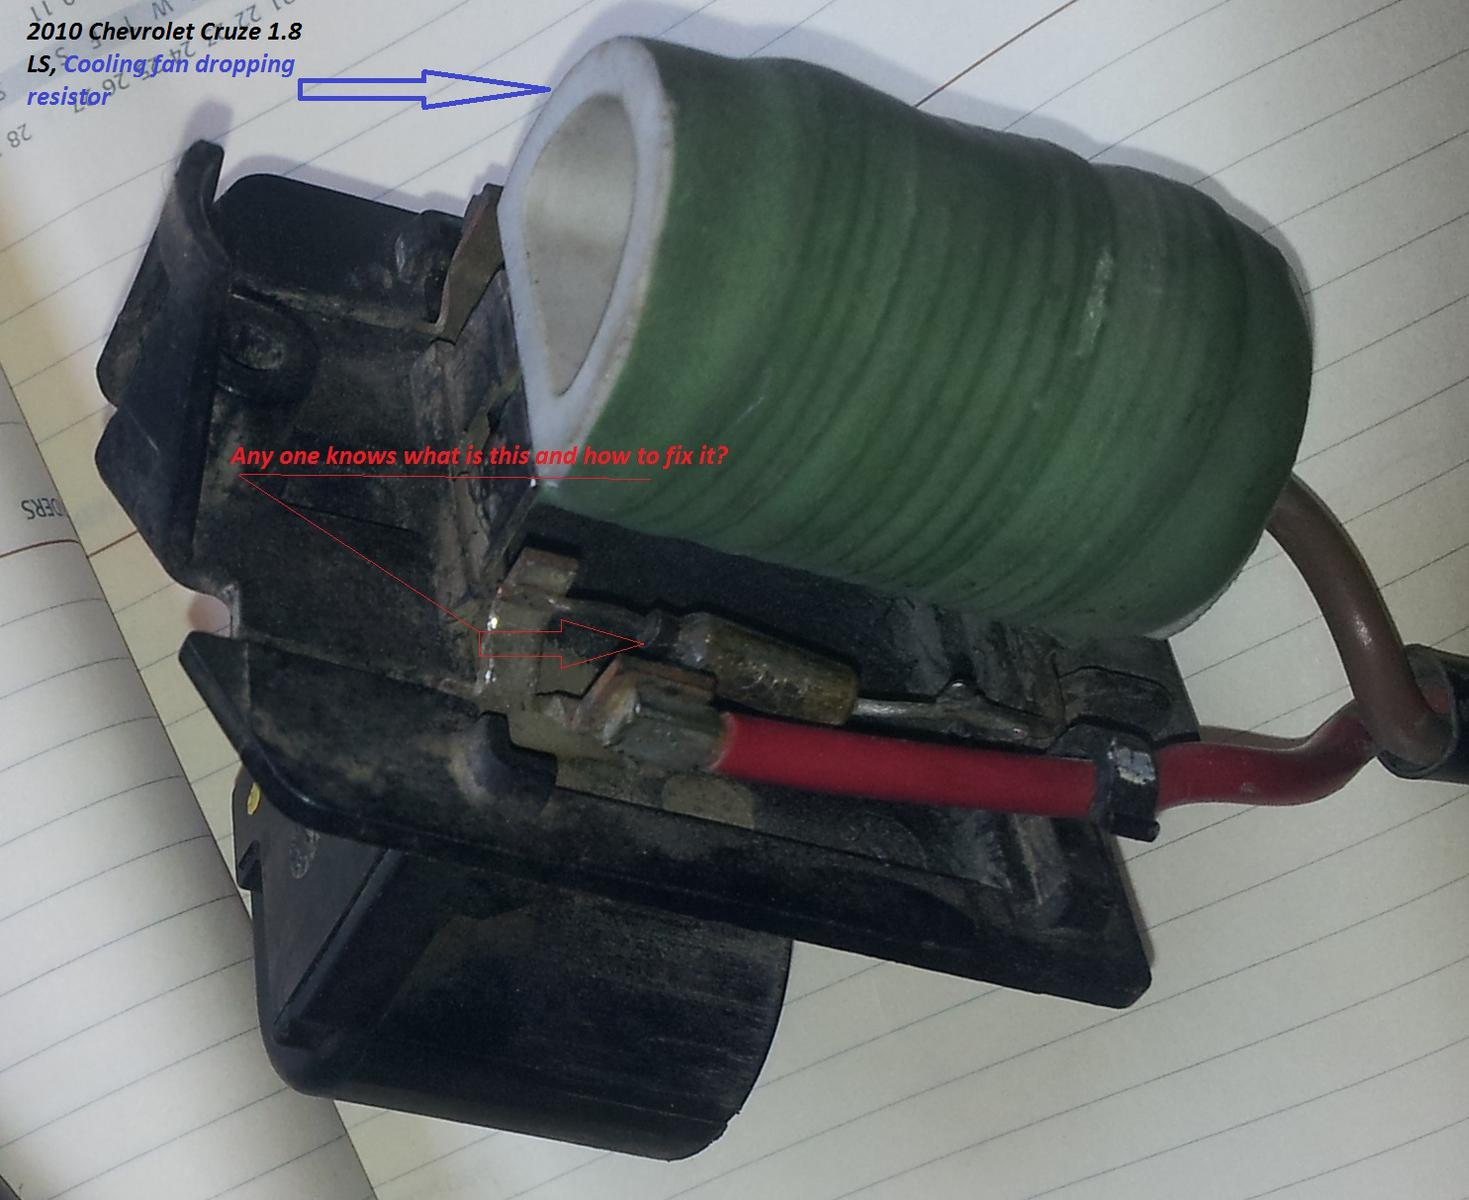 hight resolution of cooling fan dropping resistor problem in 2010 cruze 1 8ls 2011 honda accord wiring diagram 2011 chevy cruze cooling fan wiring diagram